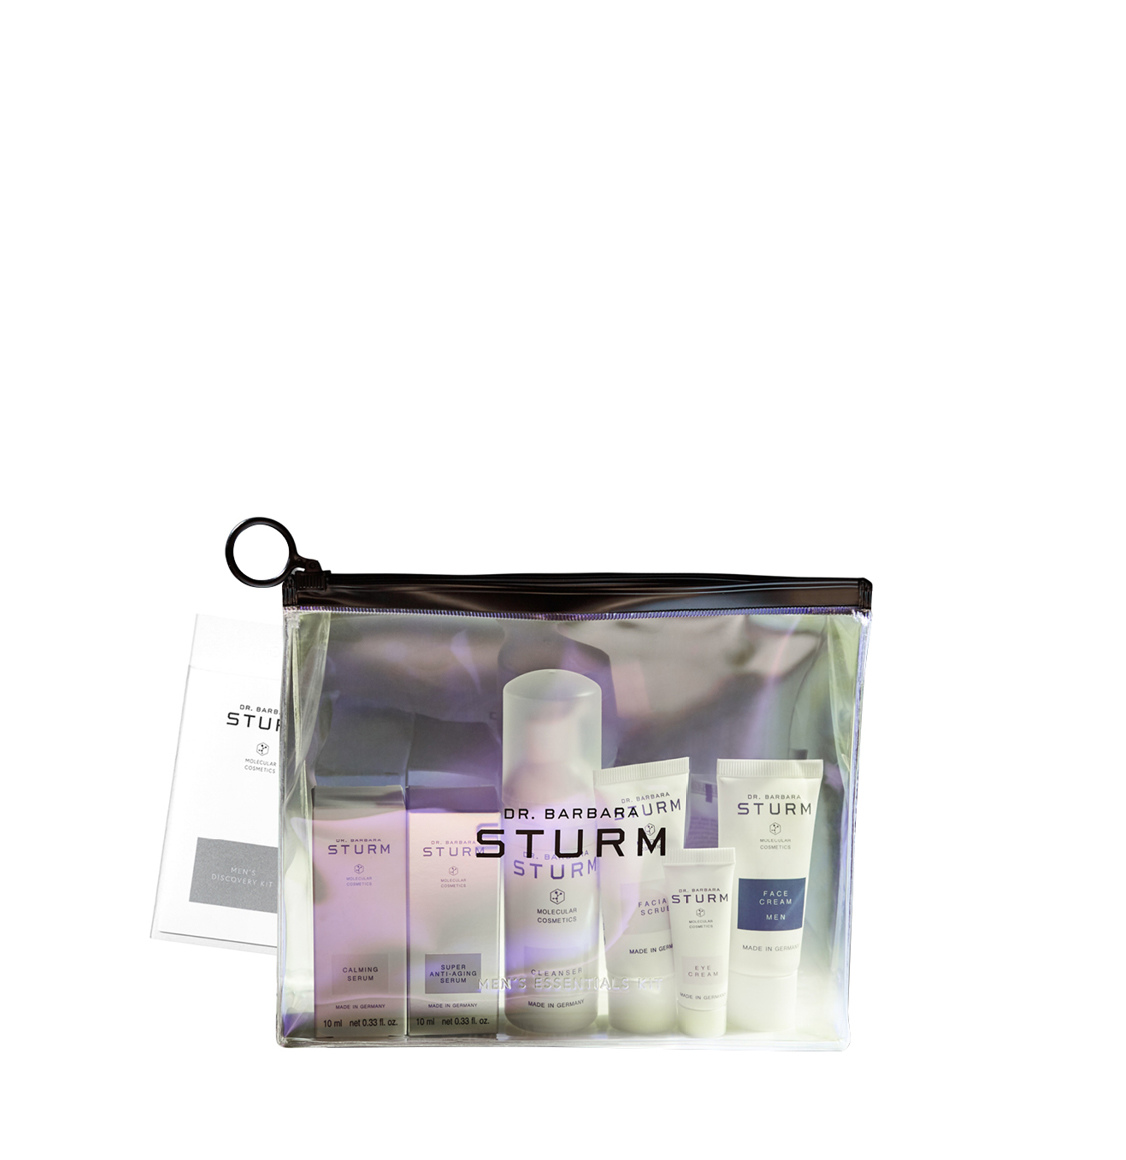 Dr. Barbara Sturm Men's Discovery Kit